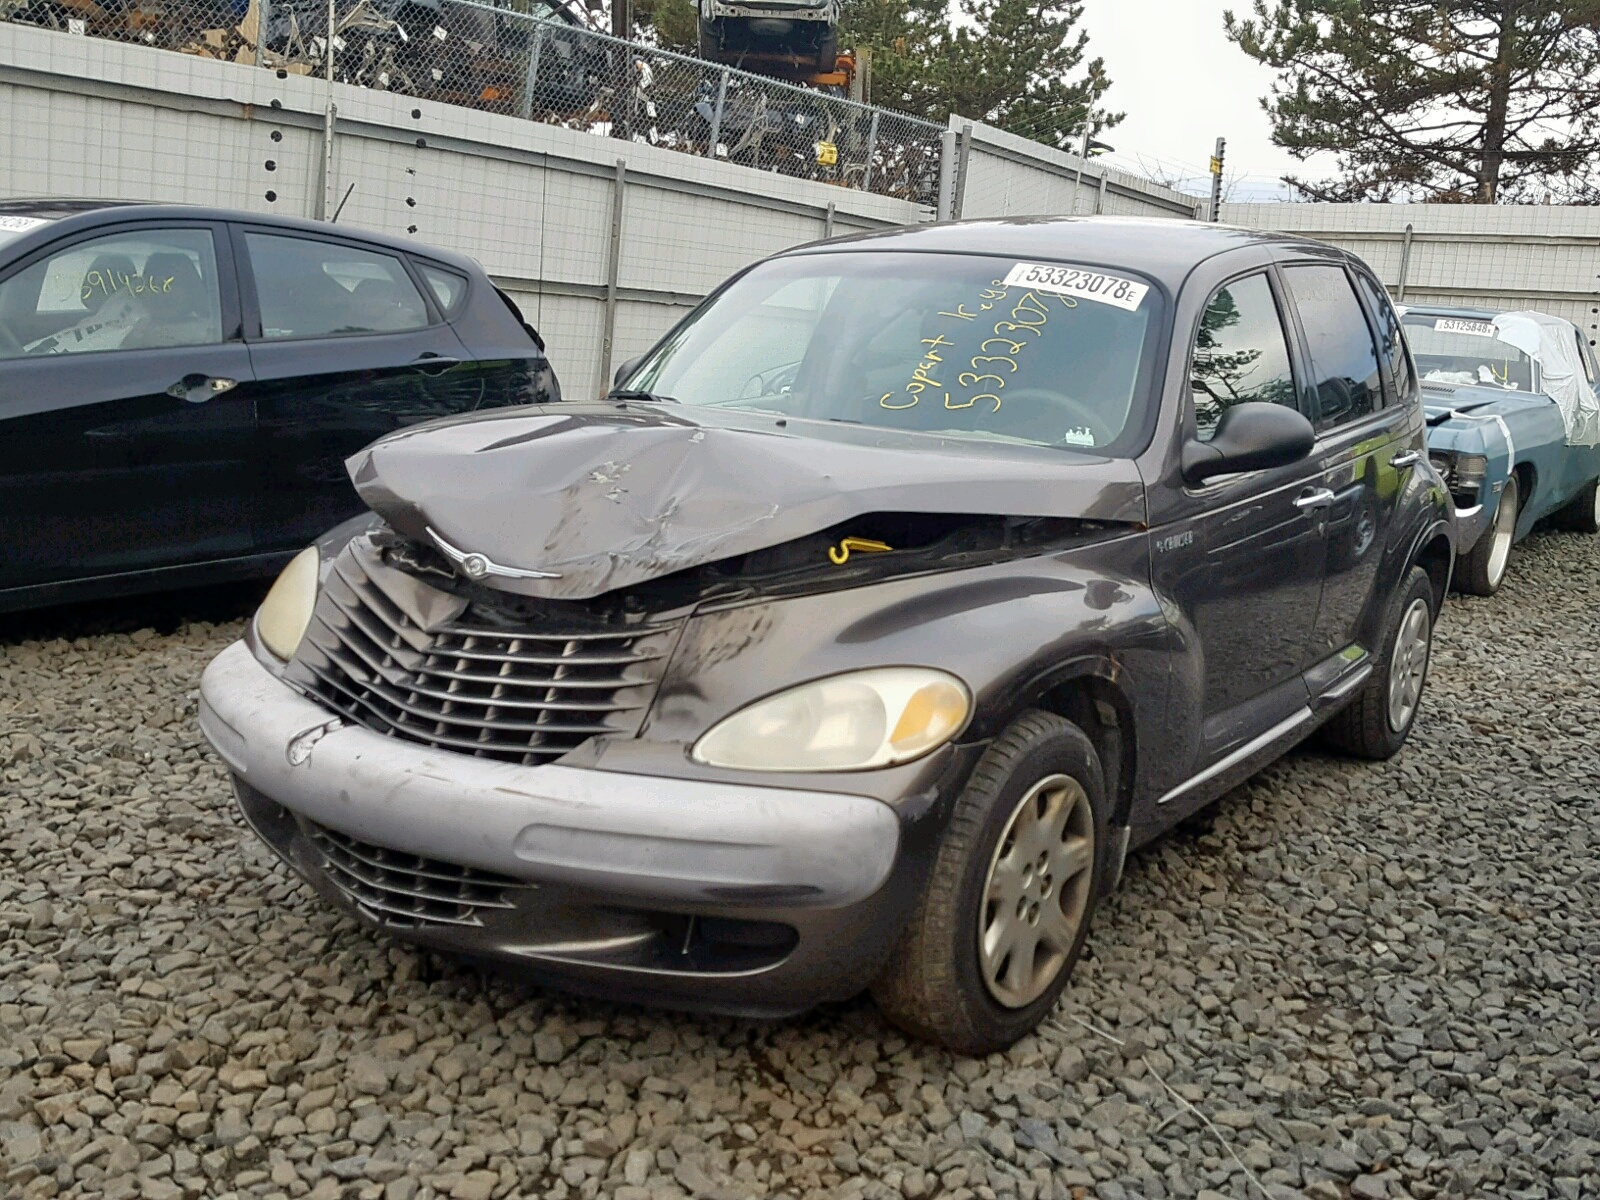 2001 Chrysler Pt Cruiser 2 4l Right View